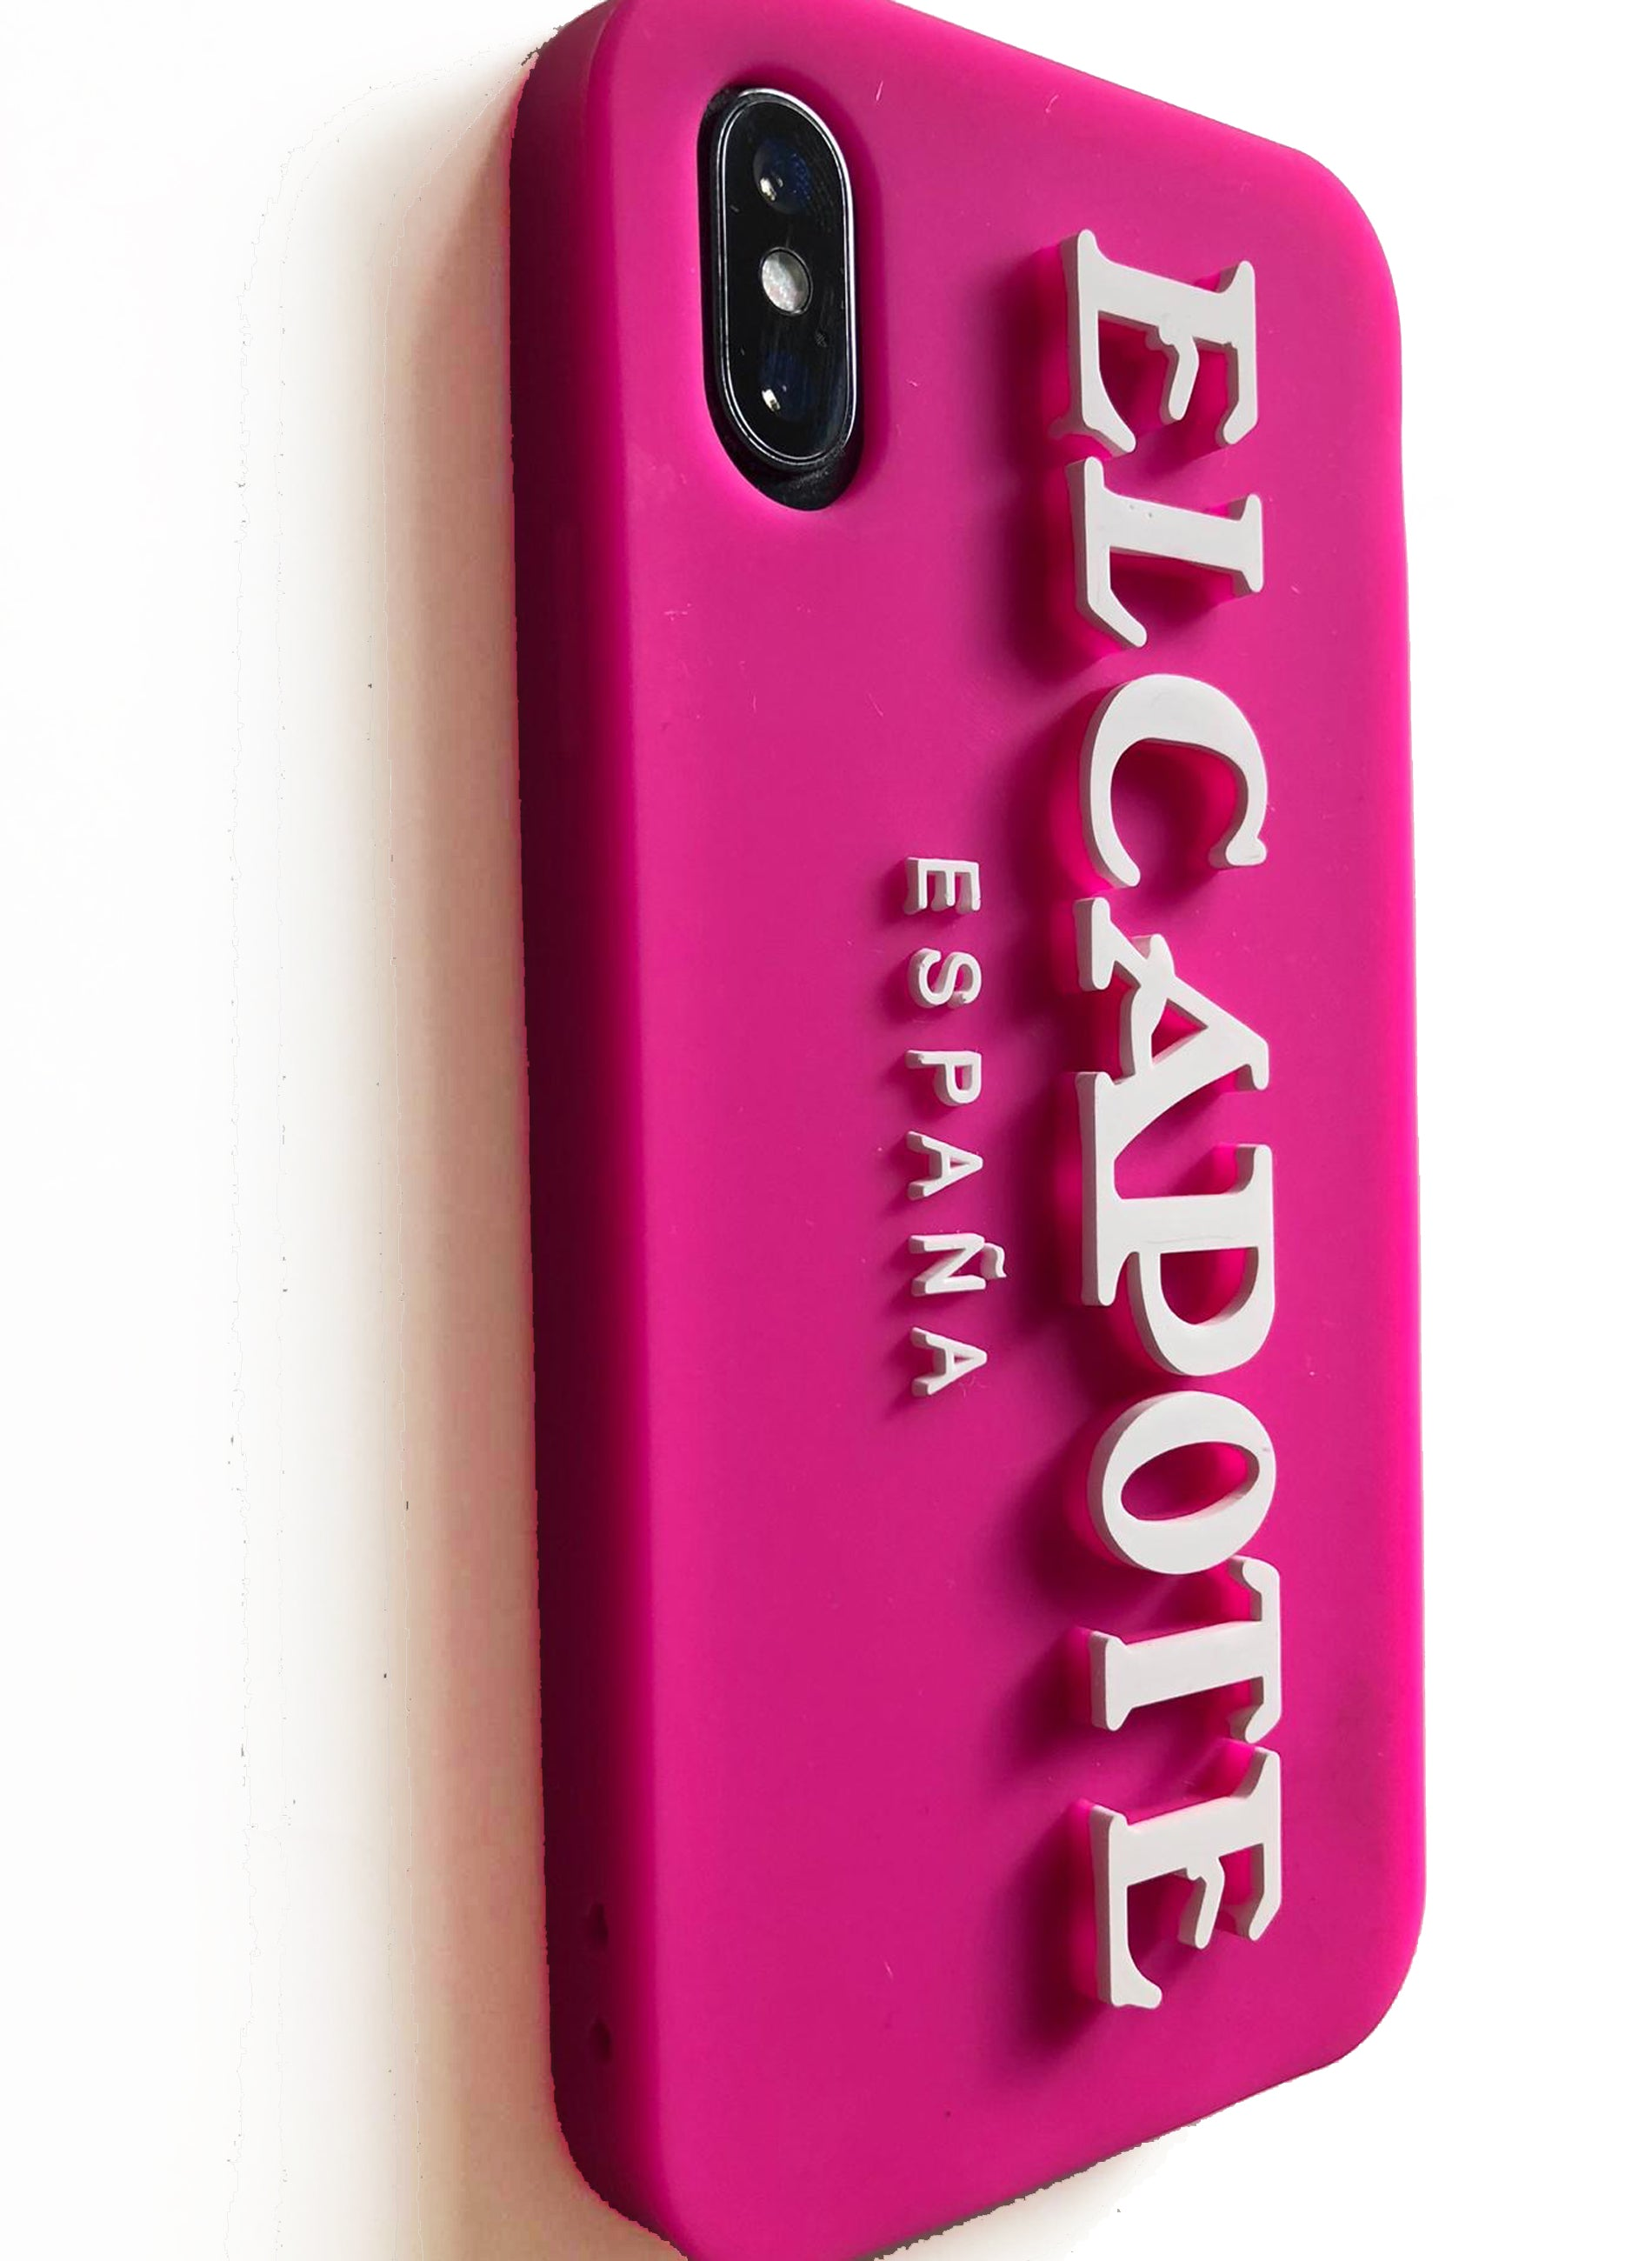 Pink Silicone Capote Iphone Case with Embossed Letters